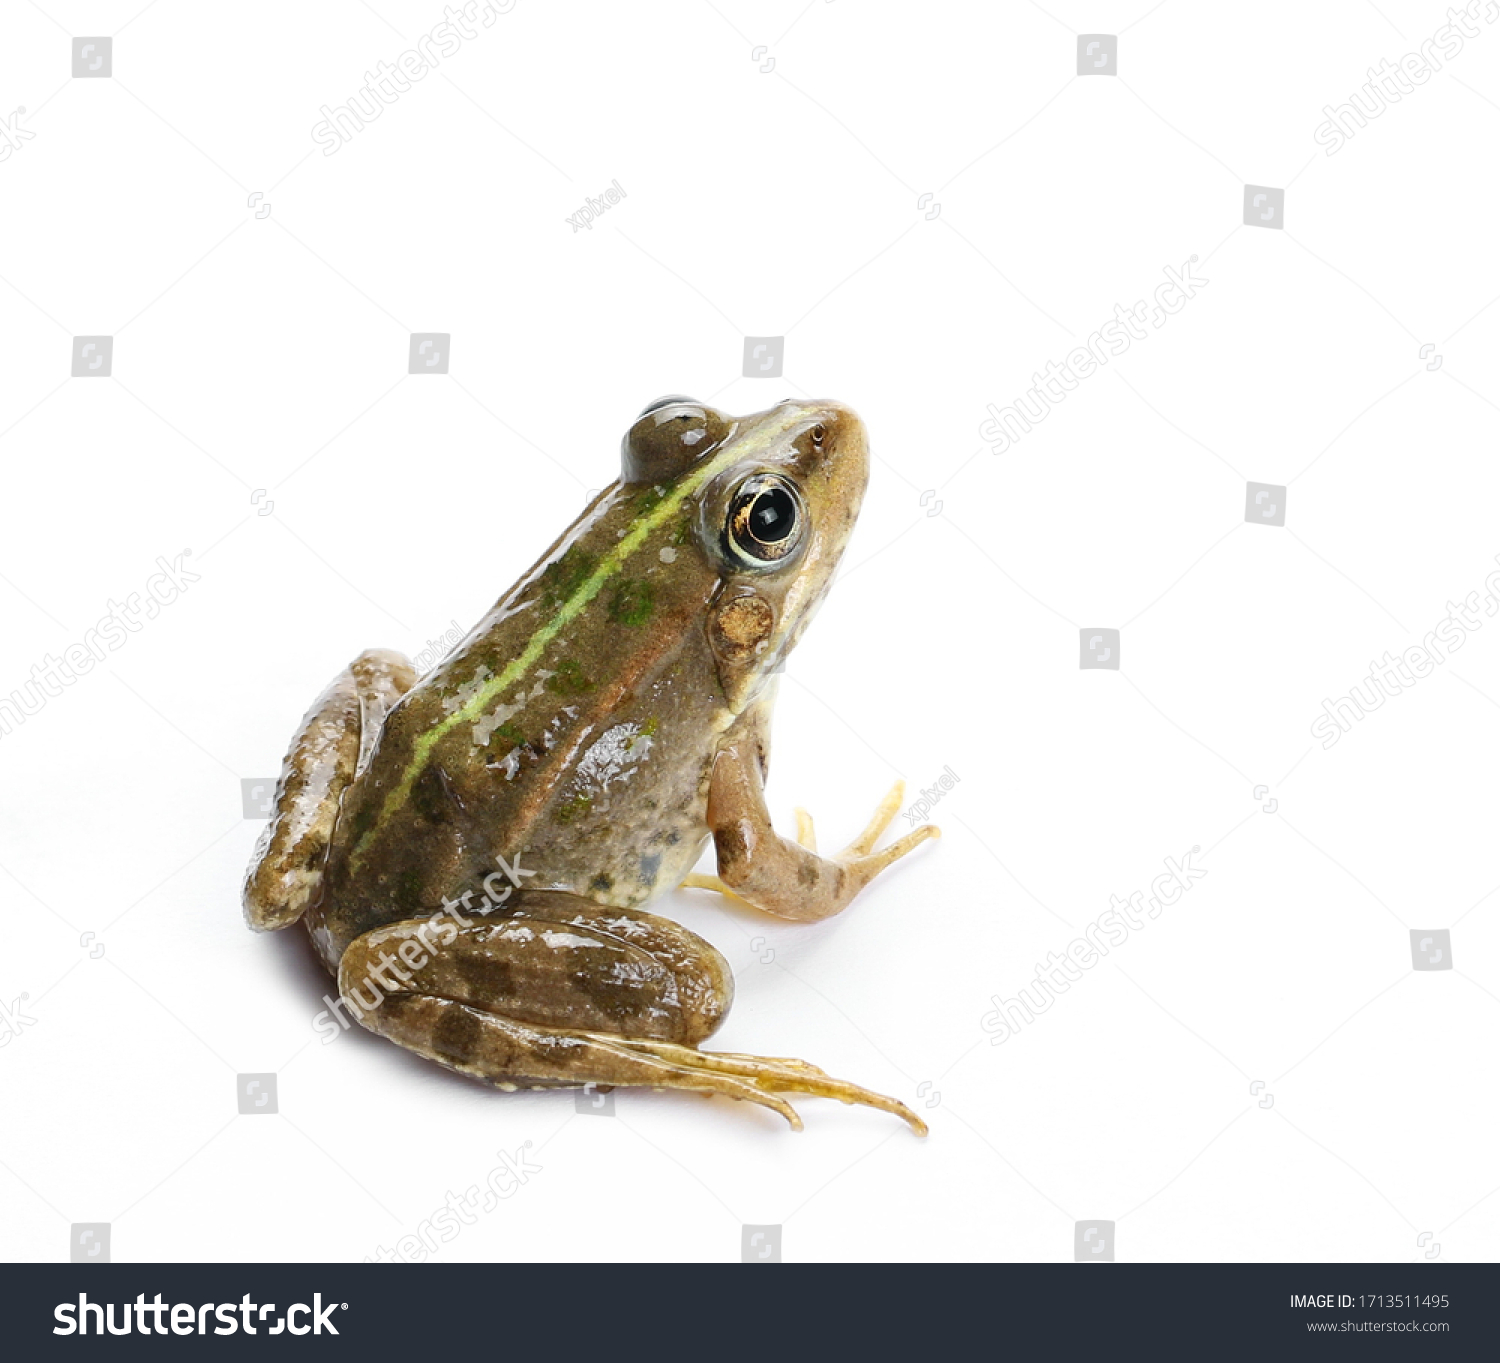 Young Marsh Frog isolated on white background, Pelophylax ridibundus #1713511495